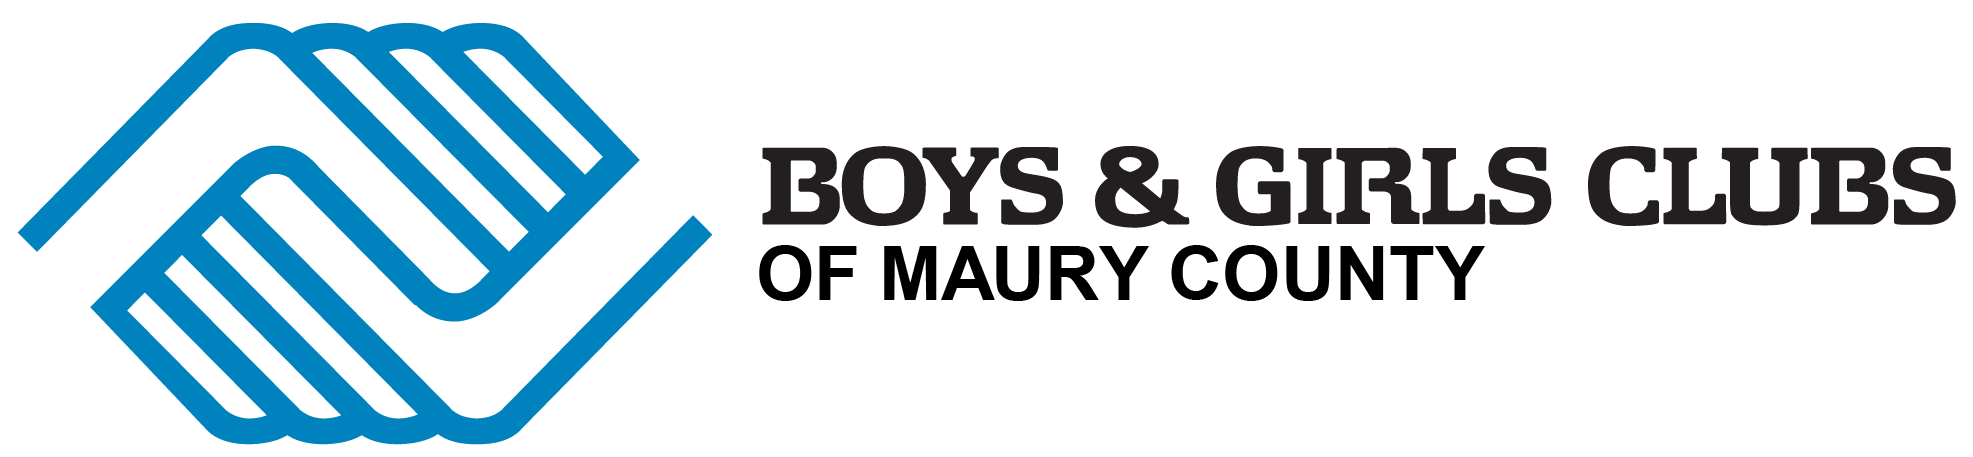 Boys & Girls Clubs of Maury County